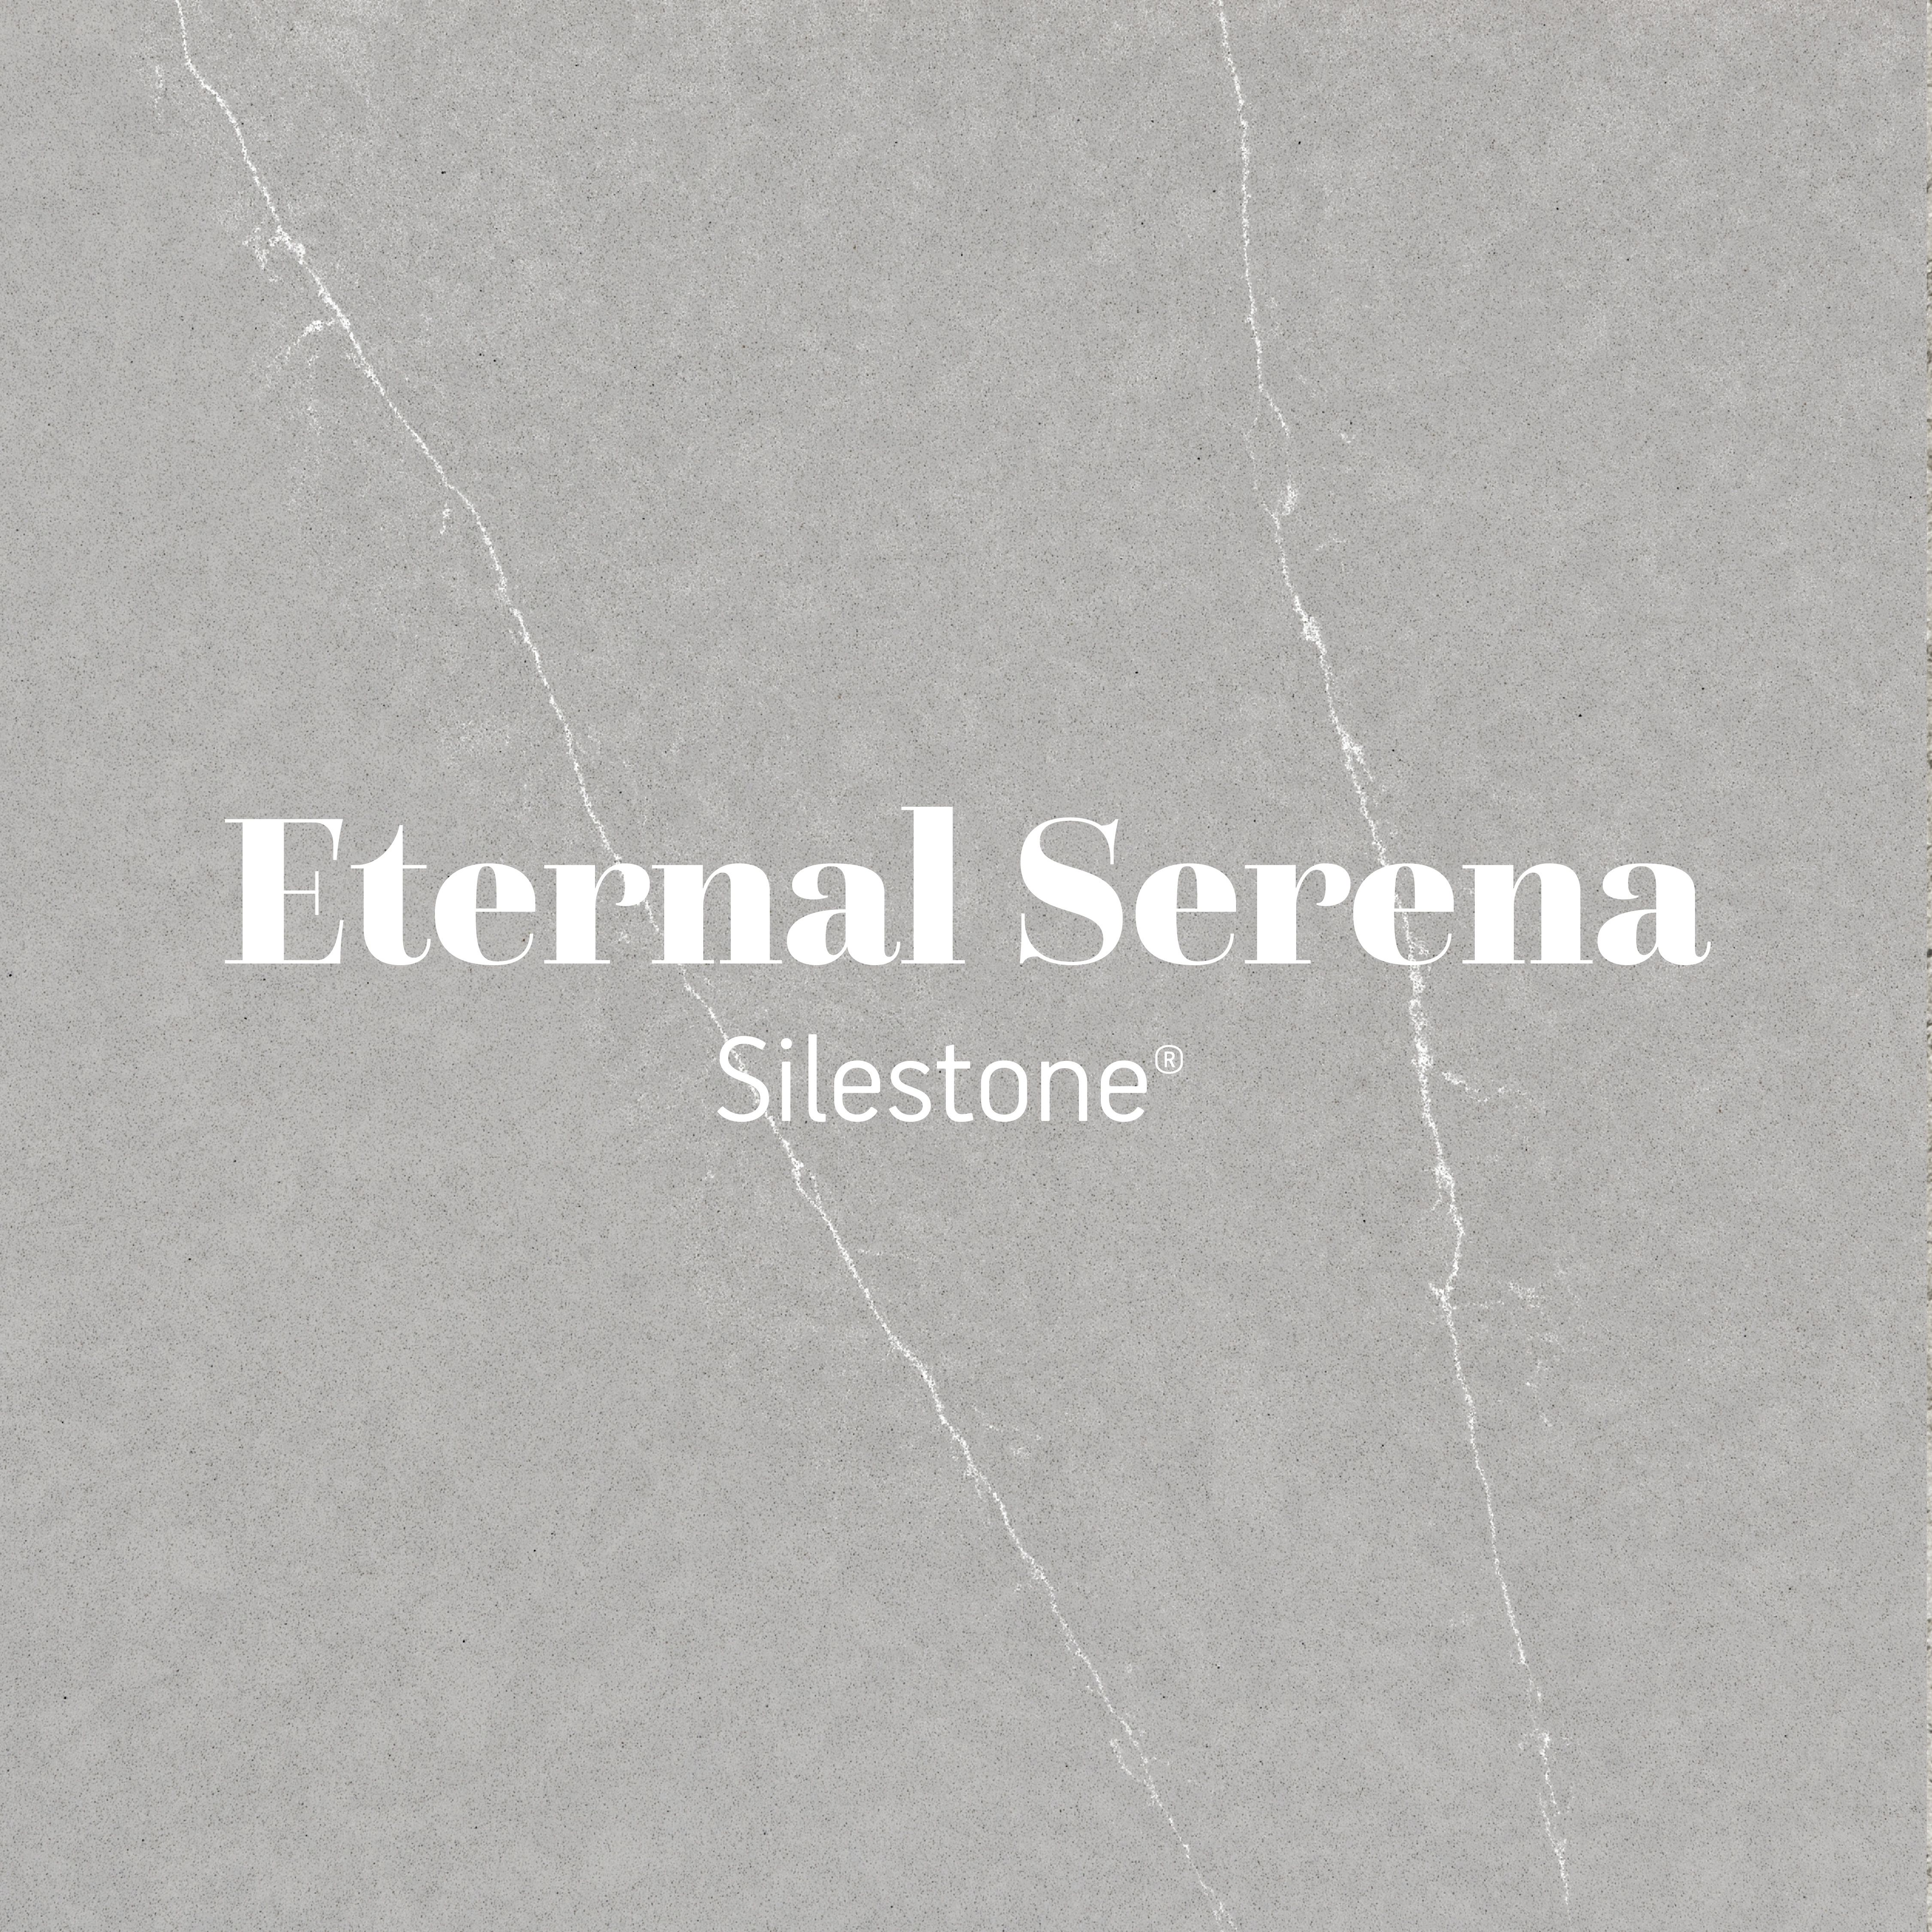 The new Silestone Eternal Serena features N-Boost technology ...